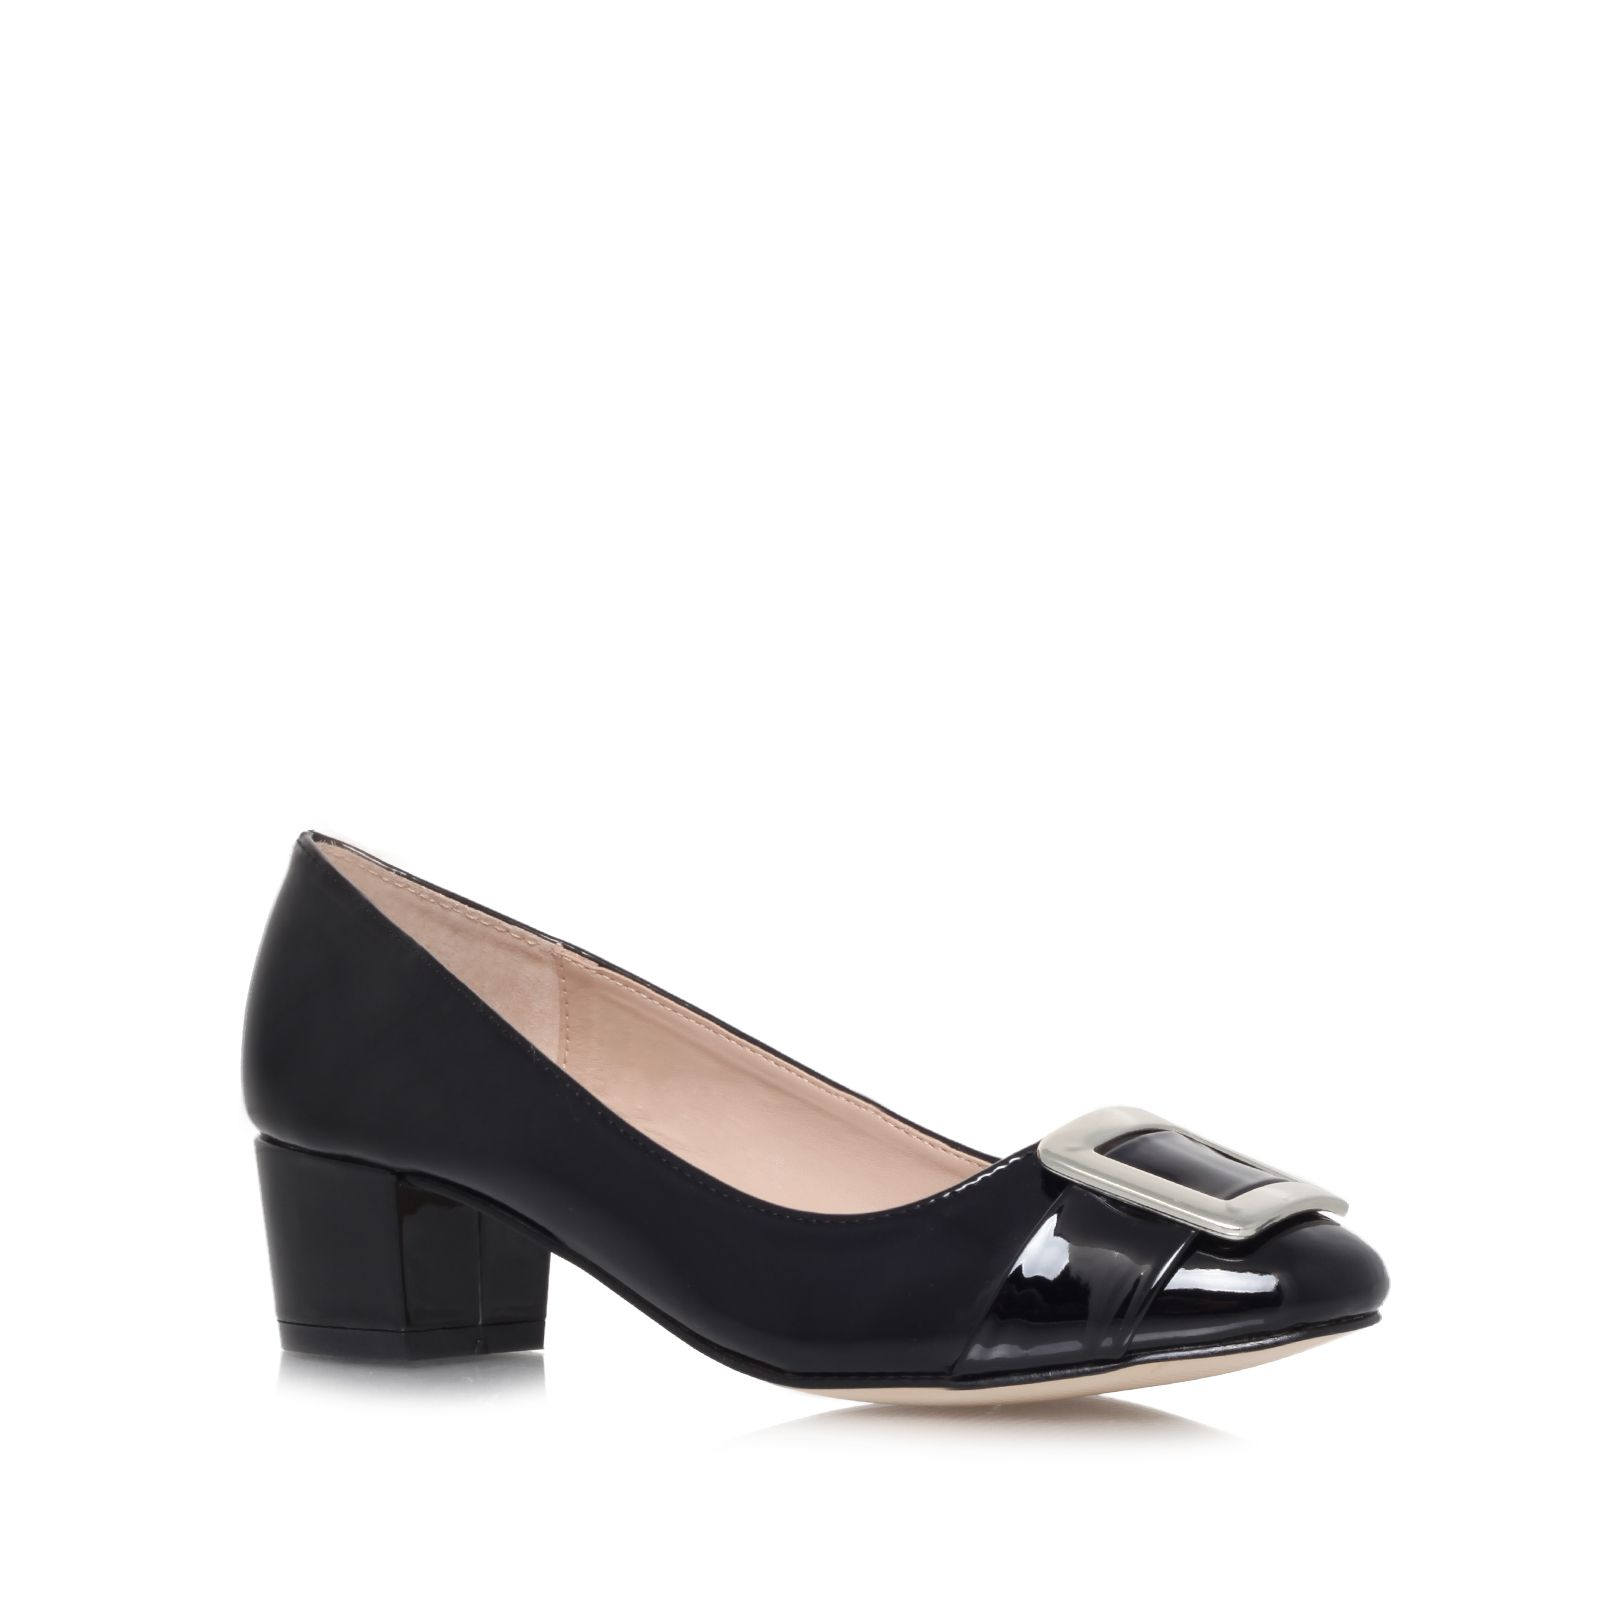 Kiki low heel court shoes